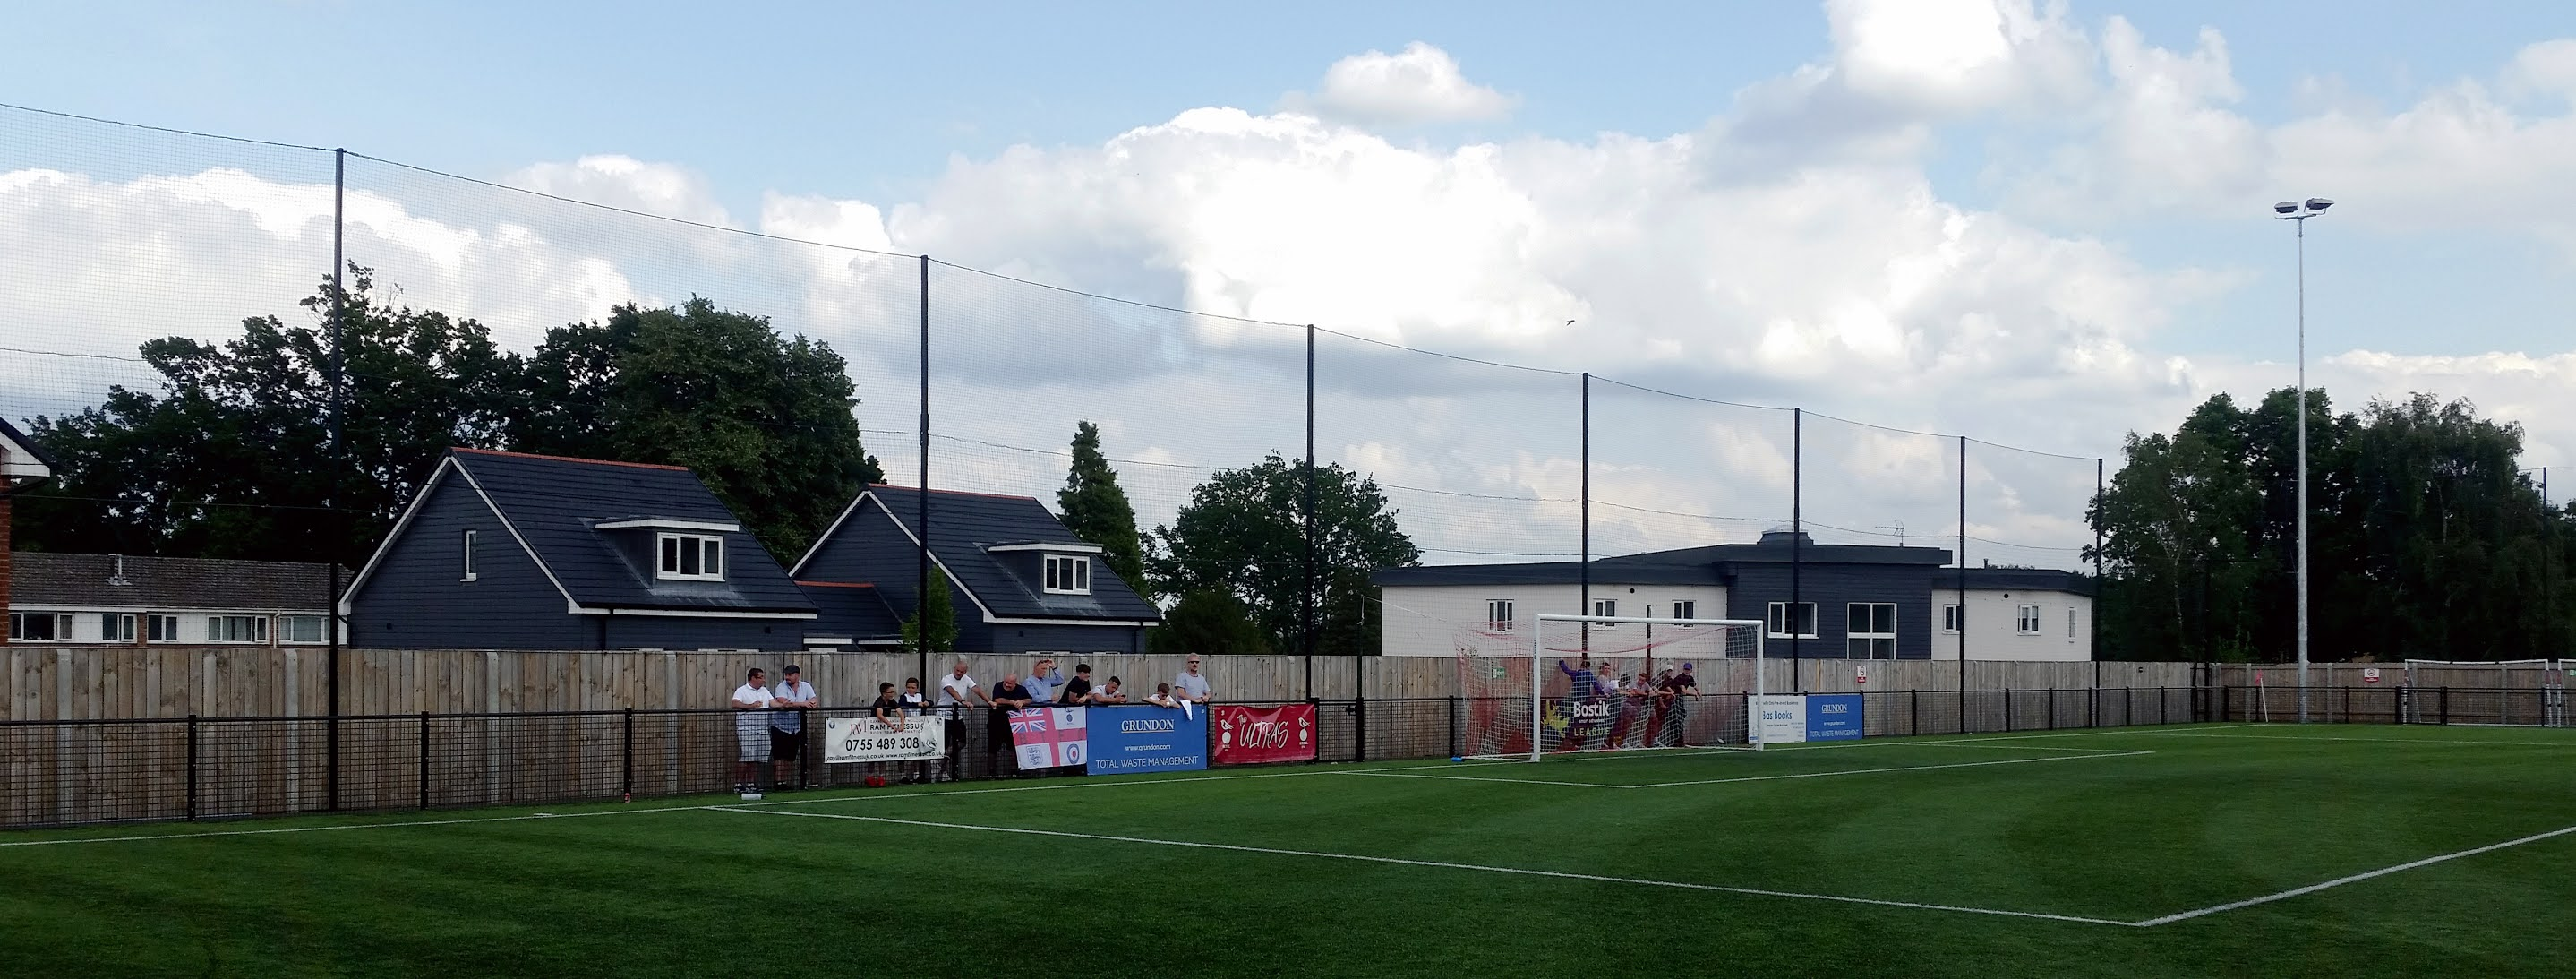 Behind the goal at Larges Lane